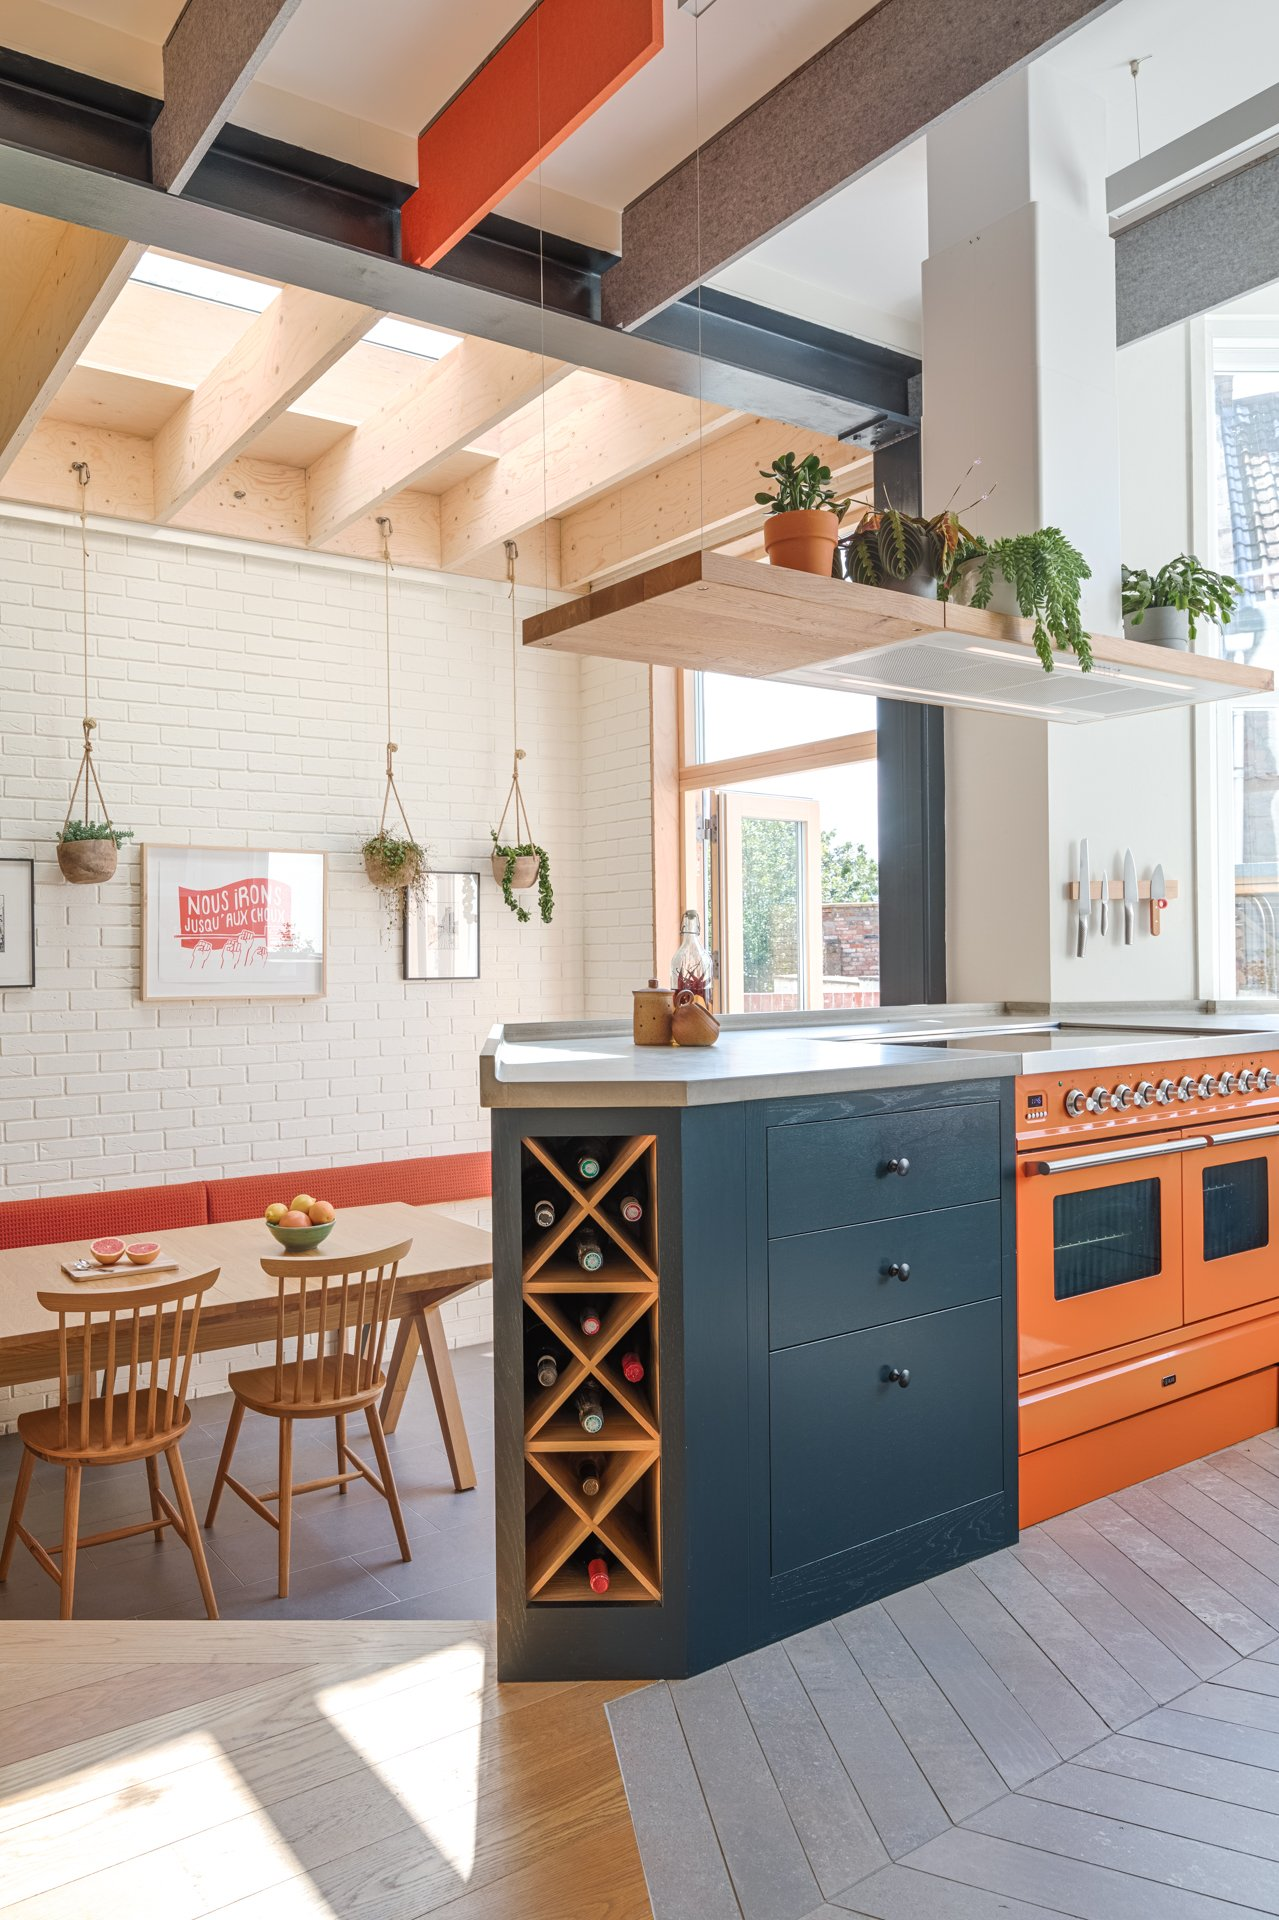 The loft kitchen Farrow and Ball Railings peninsular island with Ilve Roma 100 range in orange charlottes locks and Elica bio island extractor fan